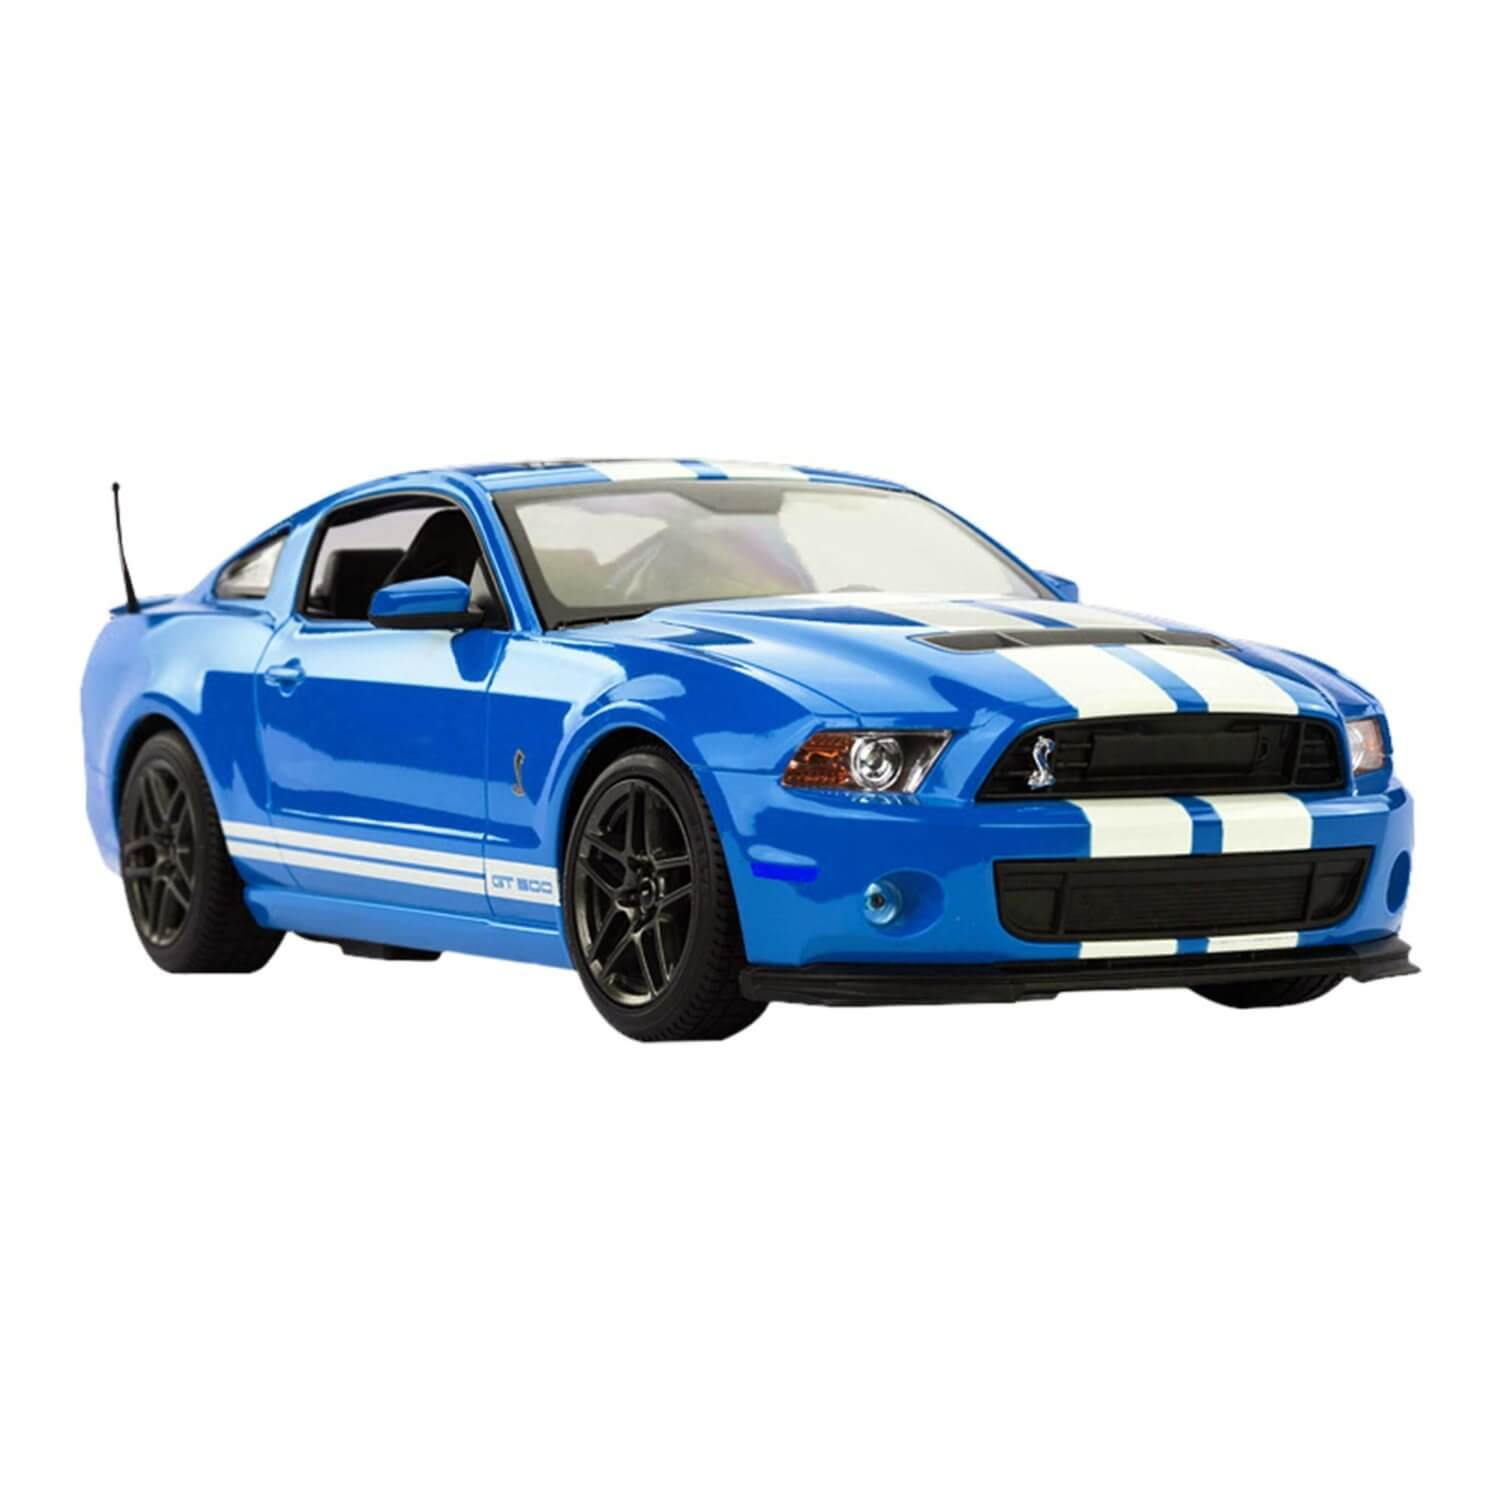 Ford Mustang Shelby GT500 1:14